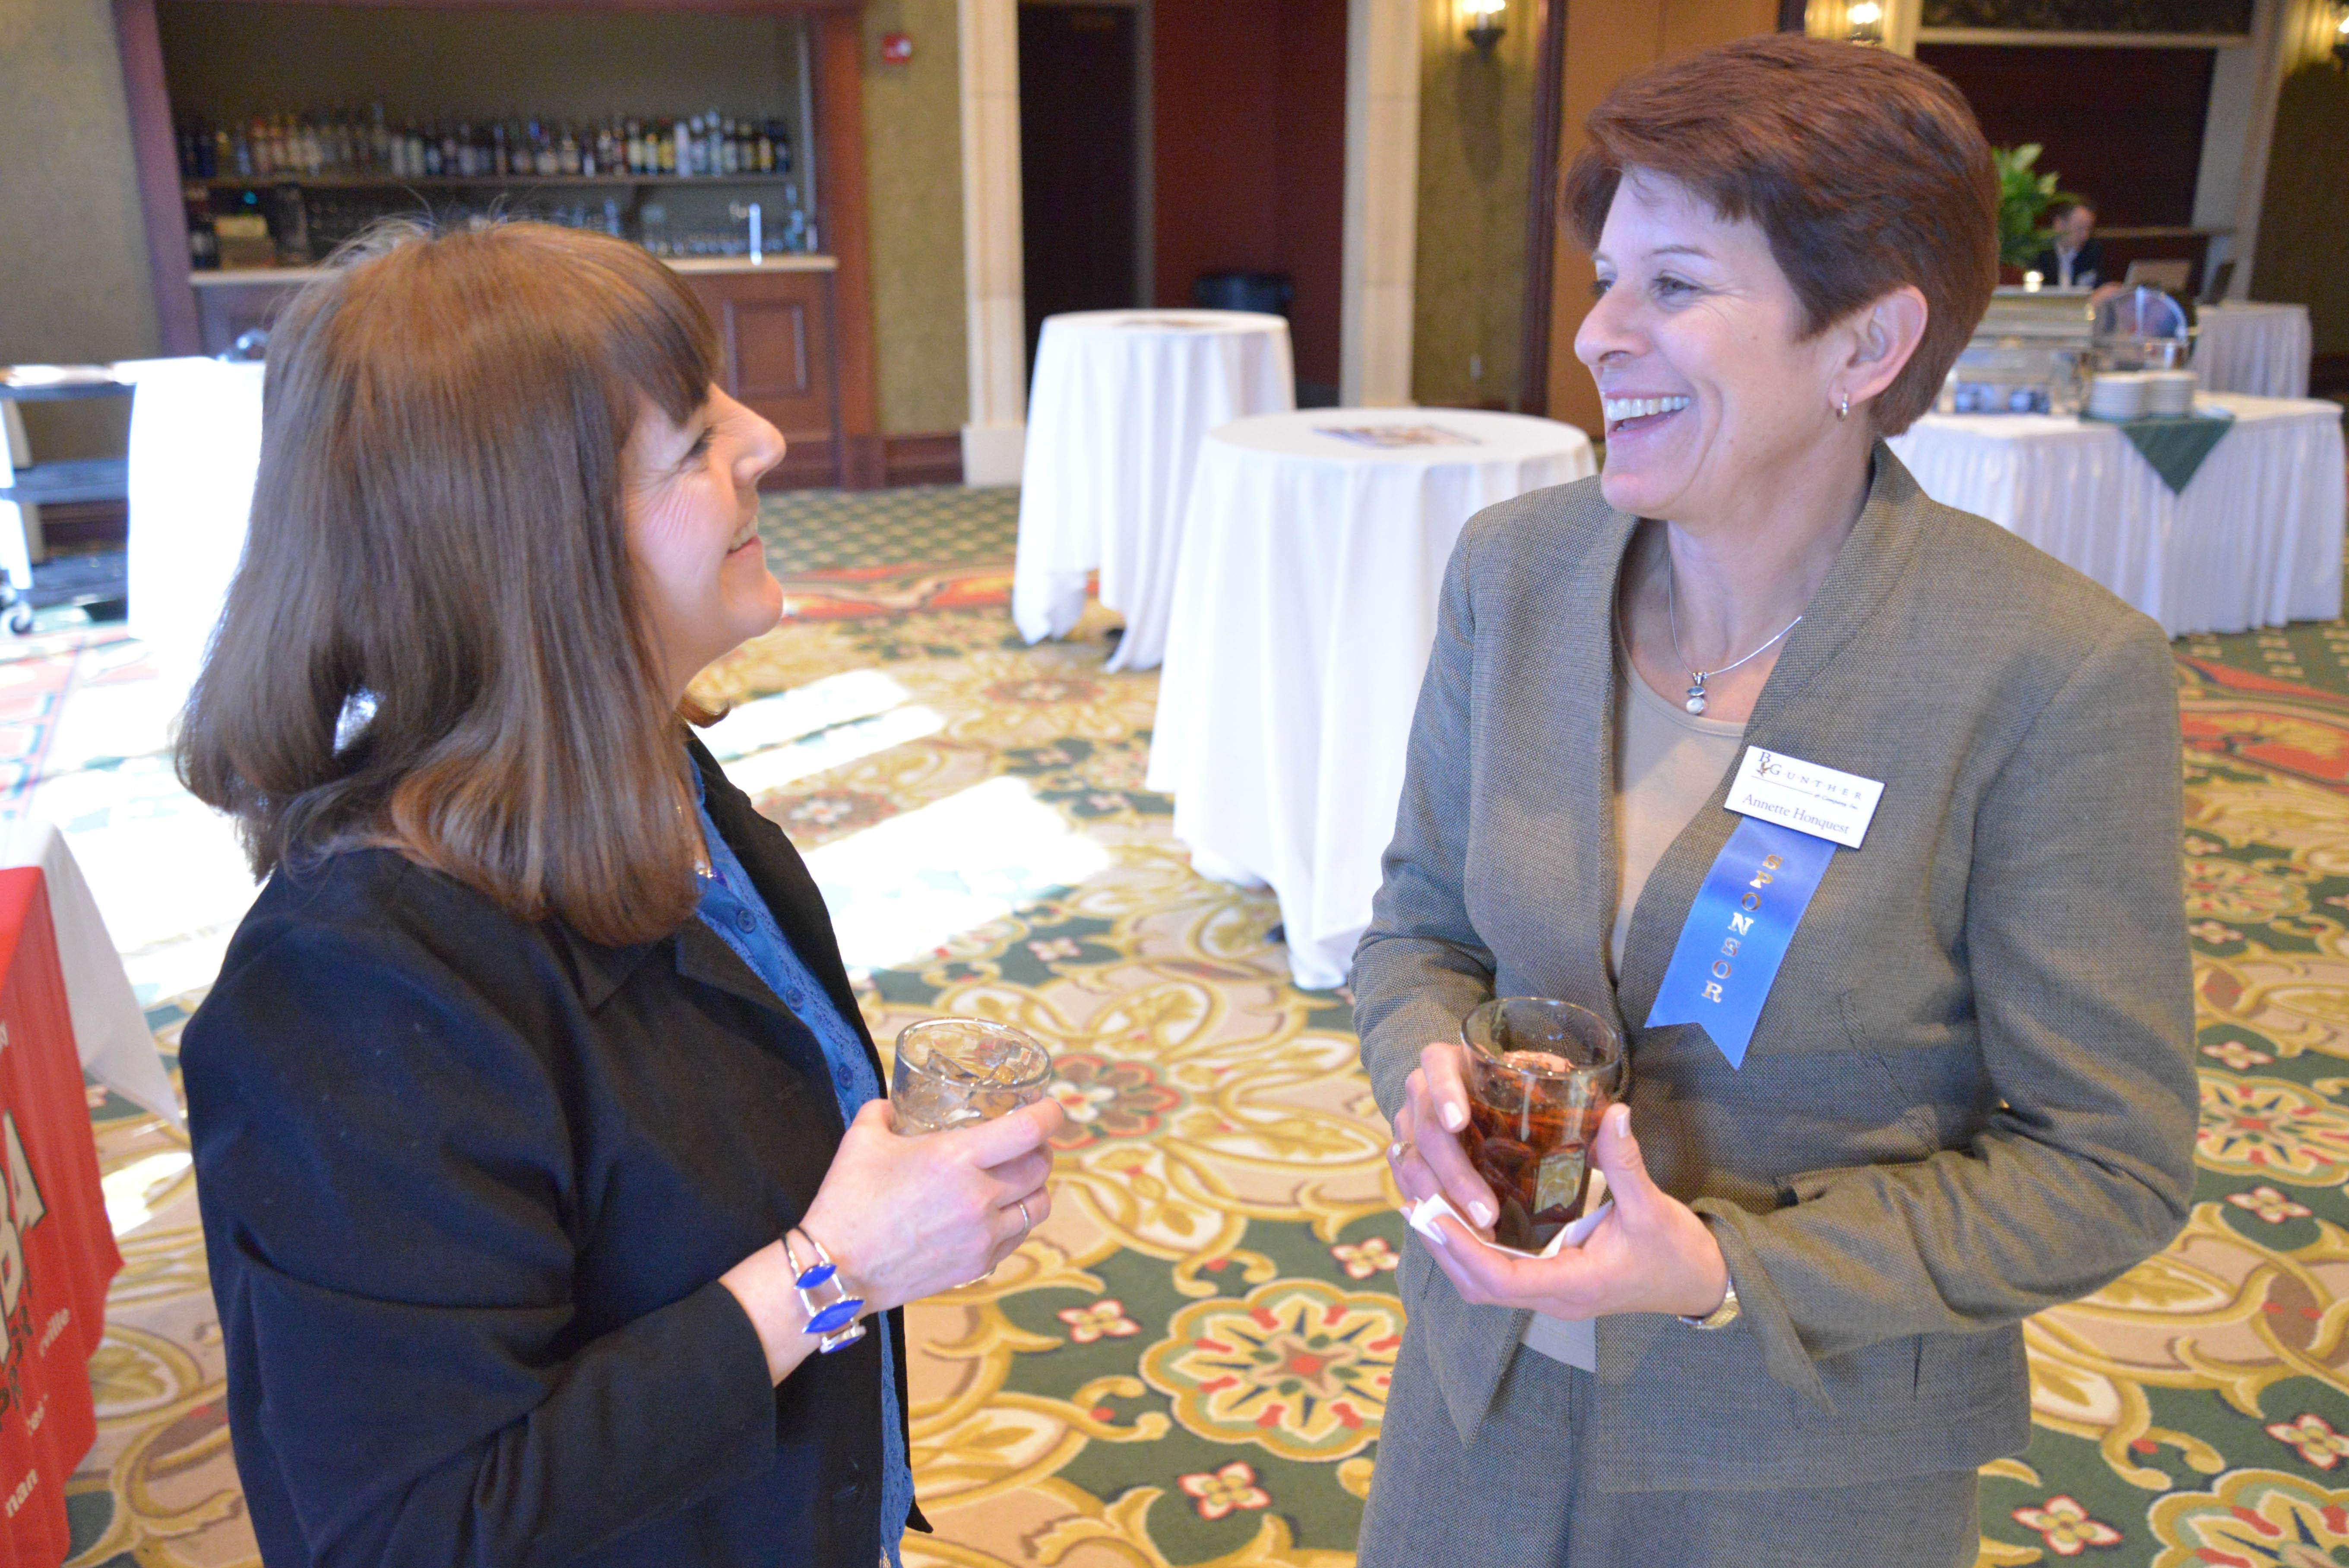 Fran Oleksy, left, and Annette Honquest of B Gunther chat during the Daily Herald Business Ledger AABE event at Medinah Banquets in Addison.